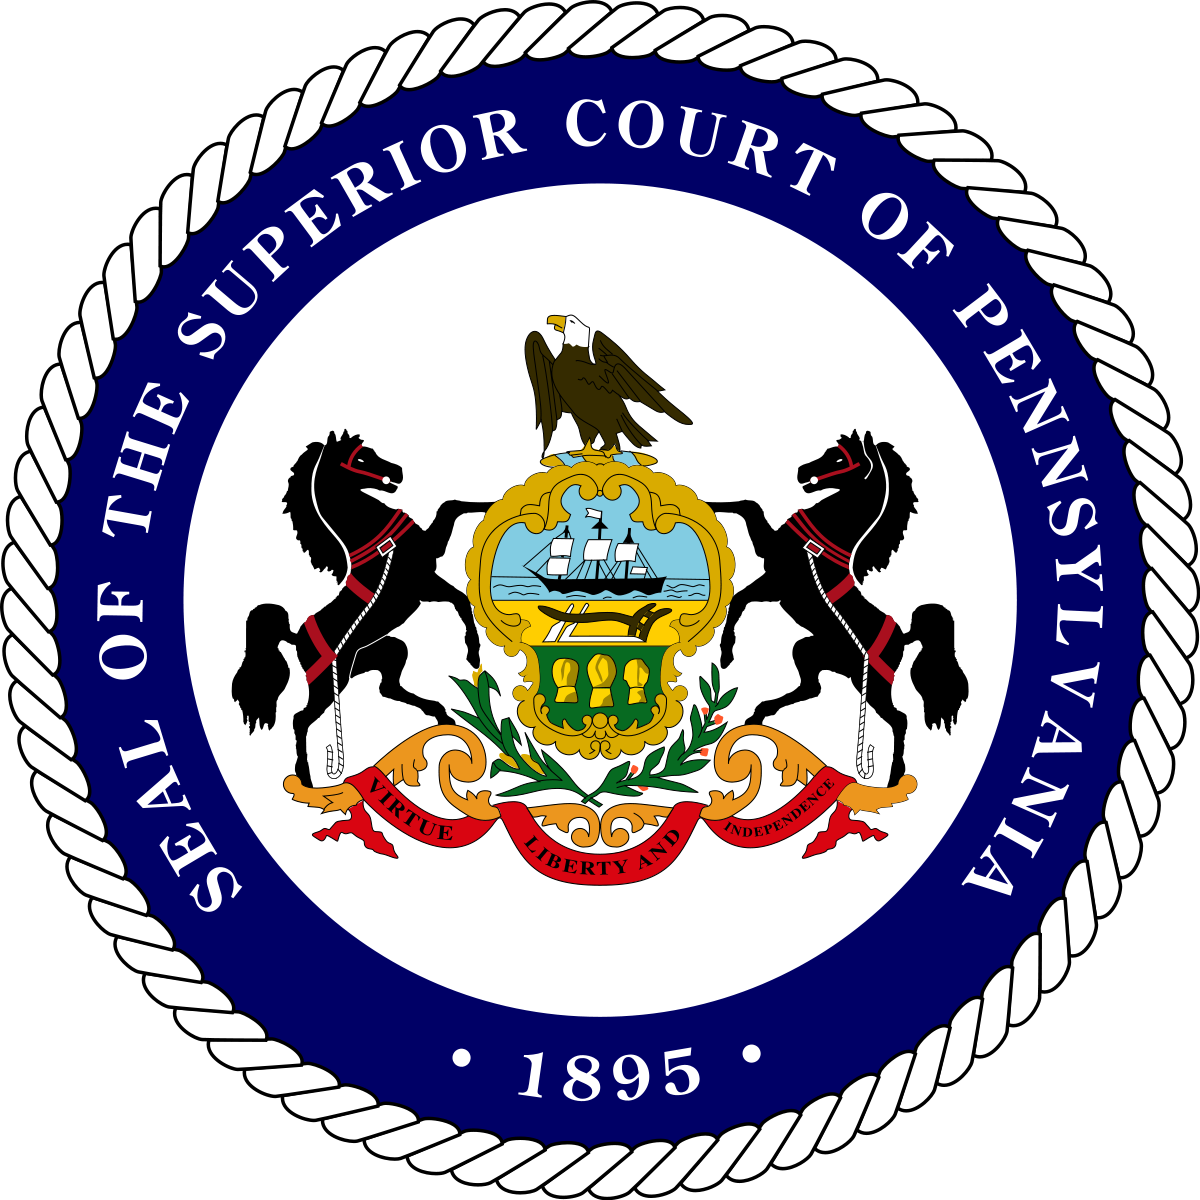 Court clipart civil court. Superior of pennsylvania wikipedia